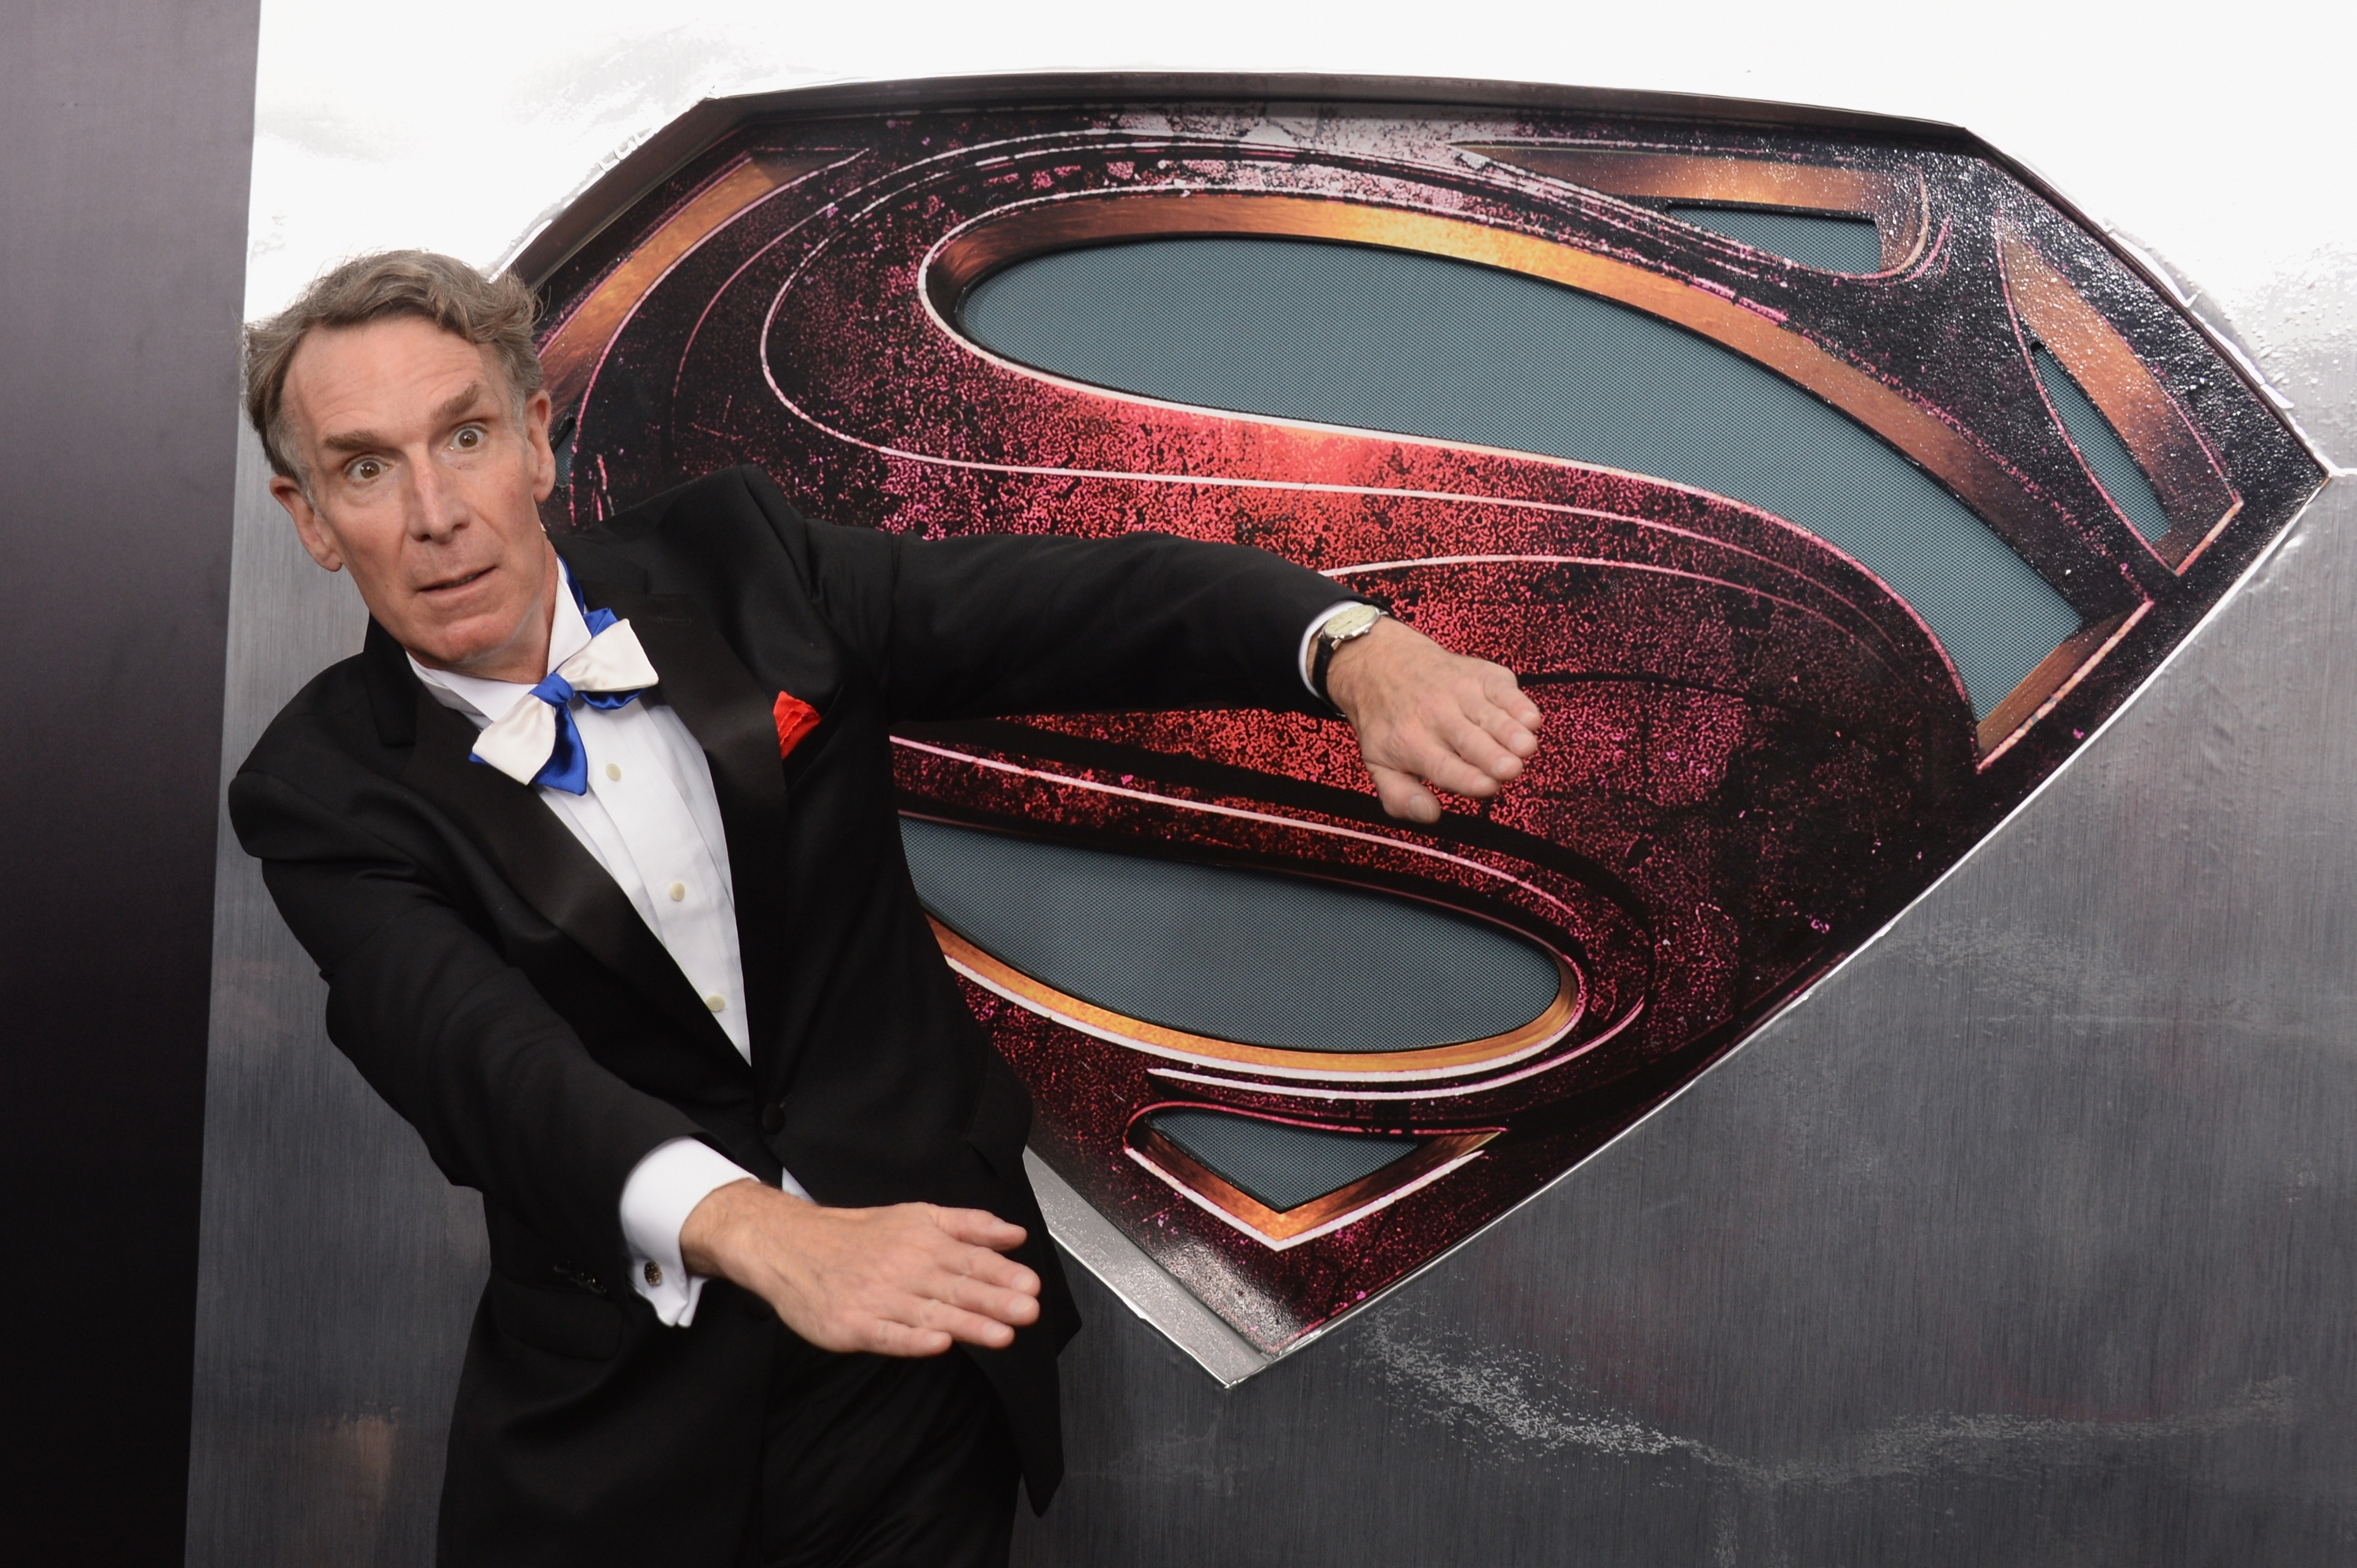 Bill Nye's Secret 'Dancing With the Stars' Mission